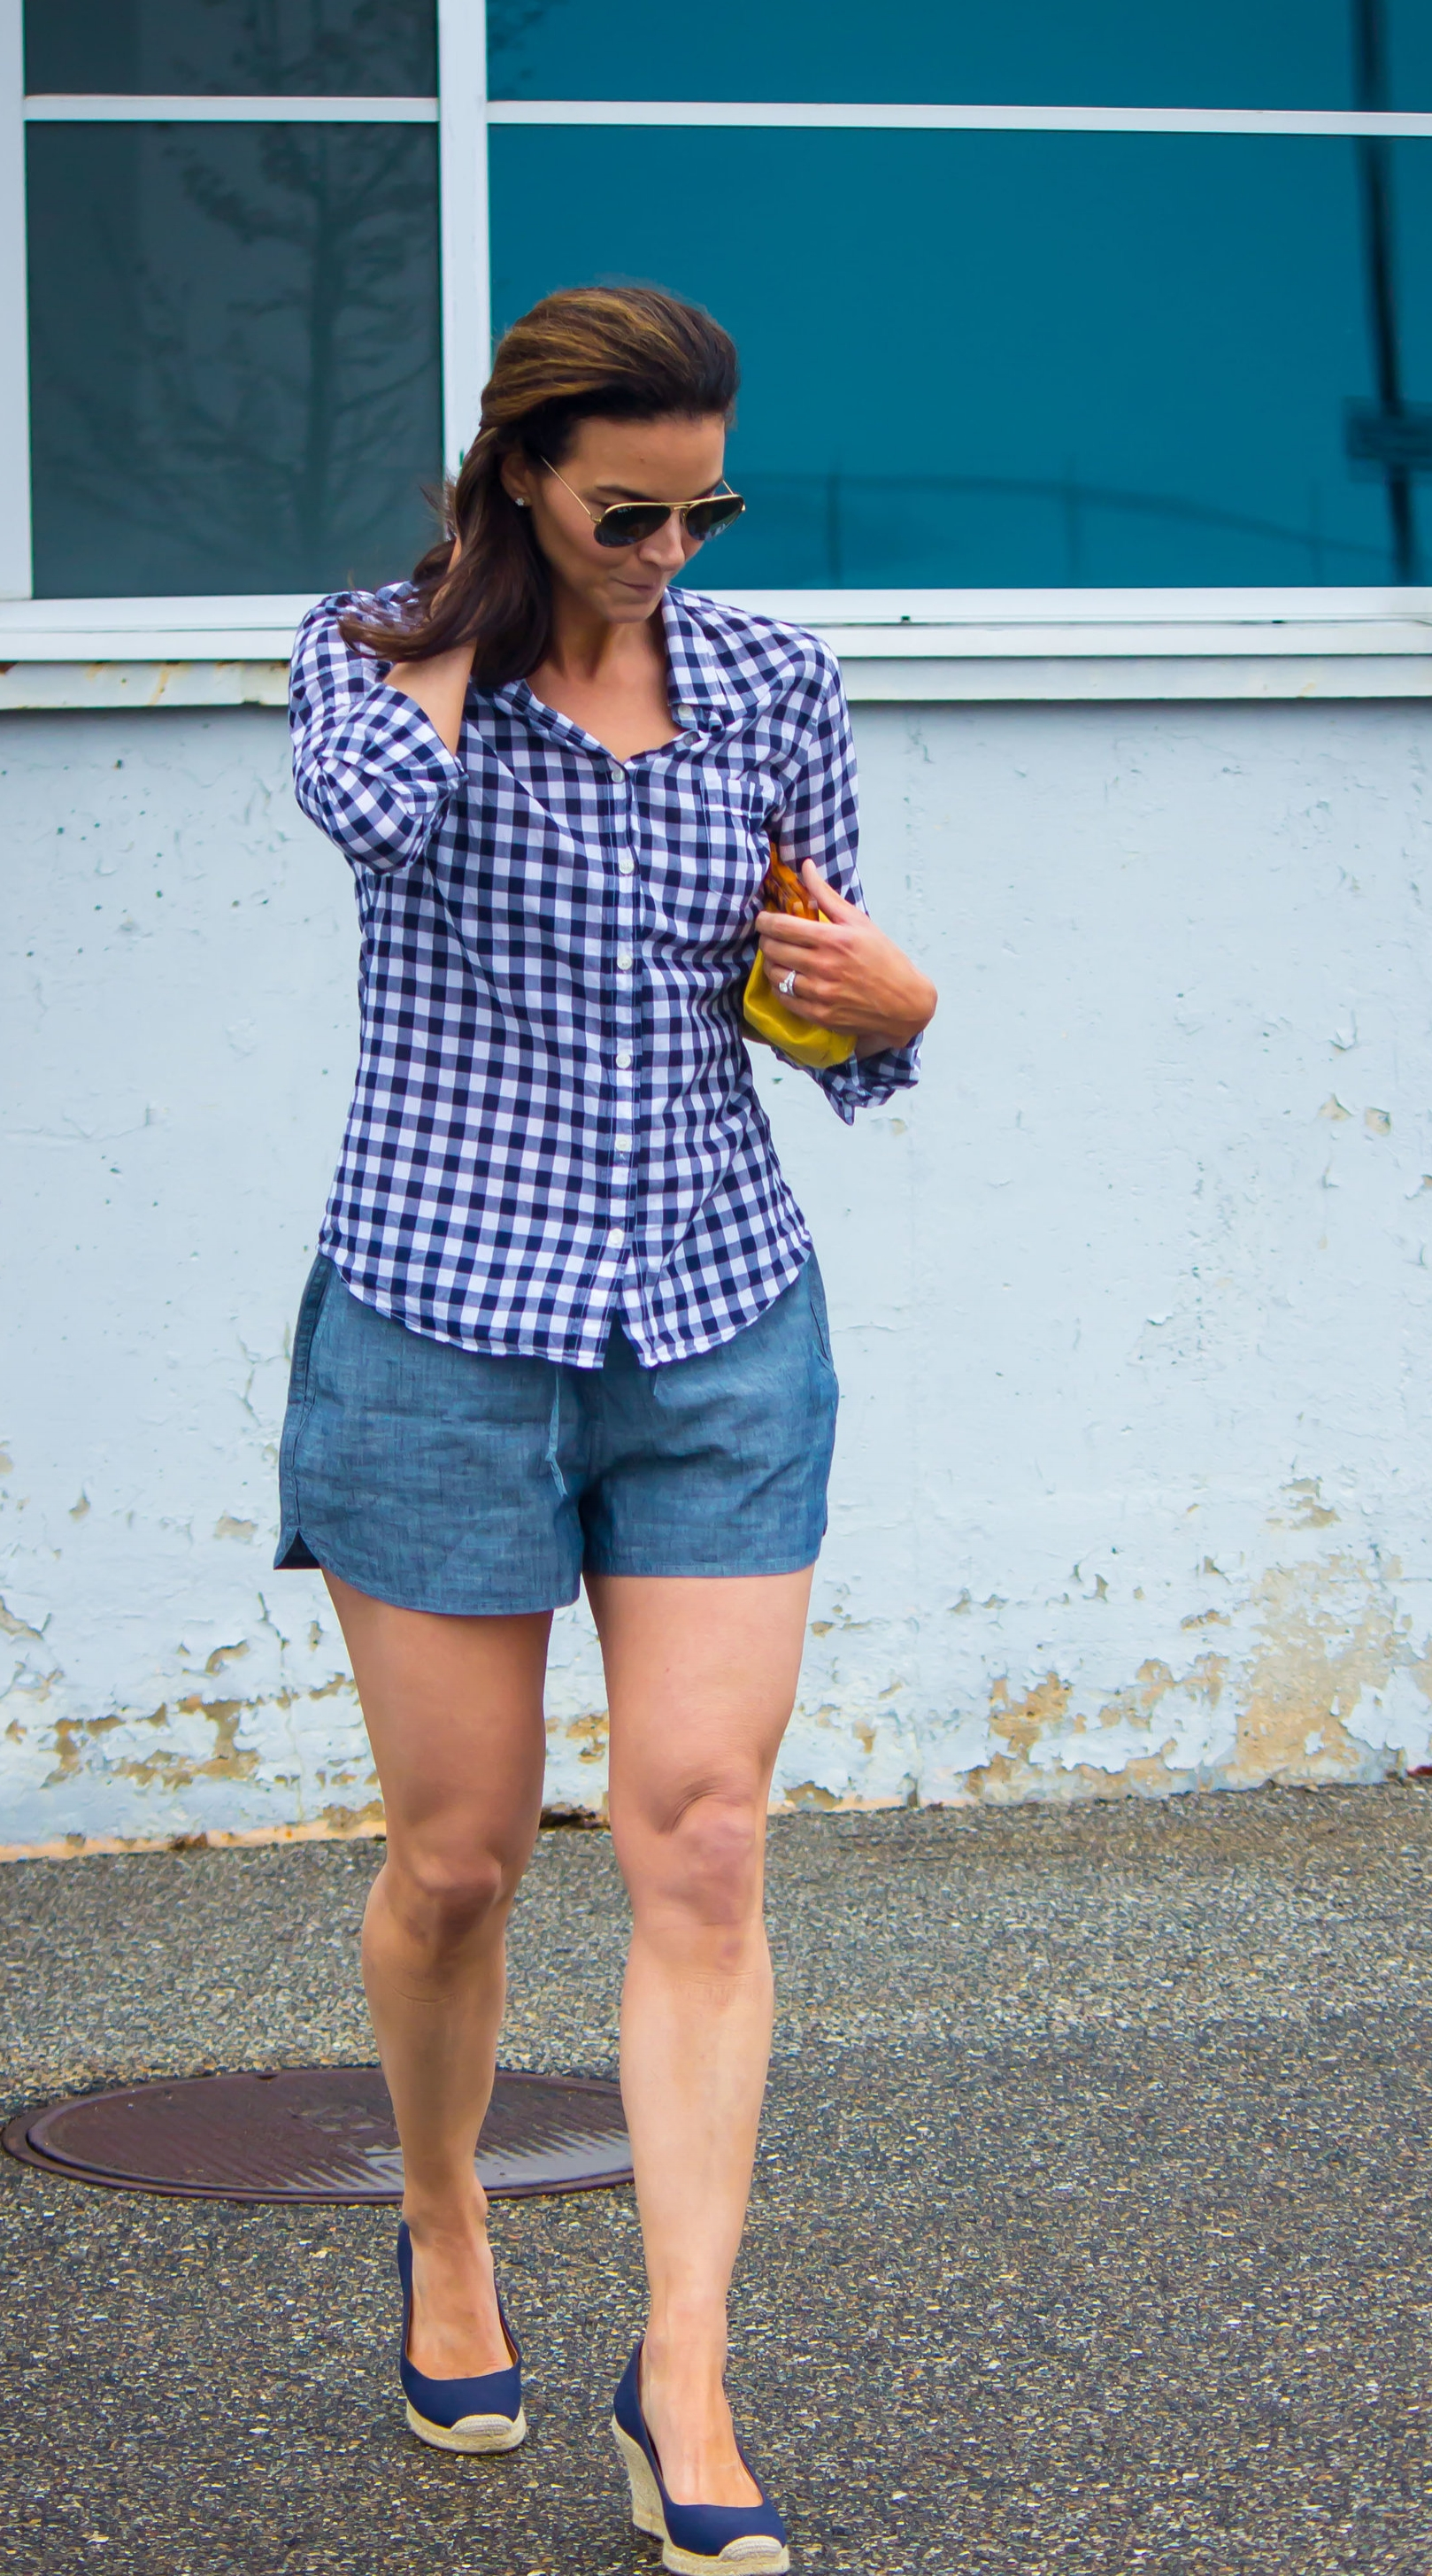 Casual Friday Outfits – Weekend Outfits – Summer Outfits – Spring Outfits – Gingham Shirt Outfits – Gingham Outfits – Fashion for Women –Chambray Shorts Outfits – Espadrille Outfits -  heartandseam.com #heartandseam #gingham